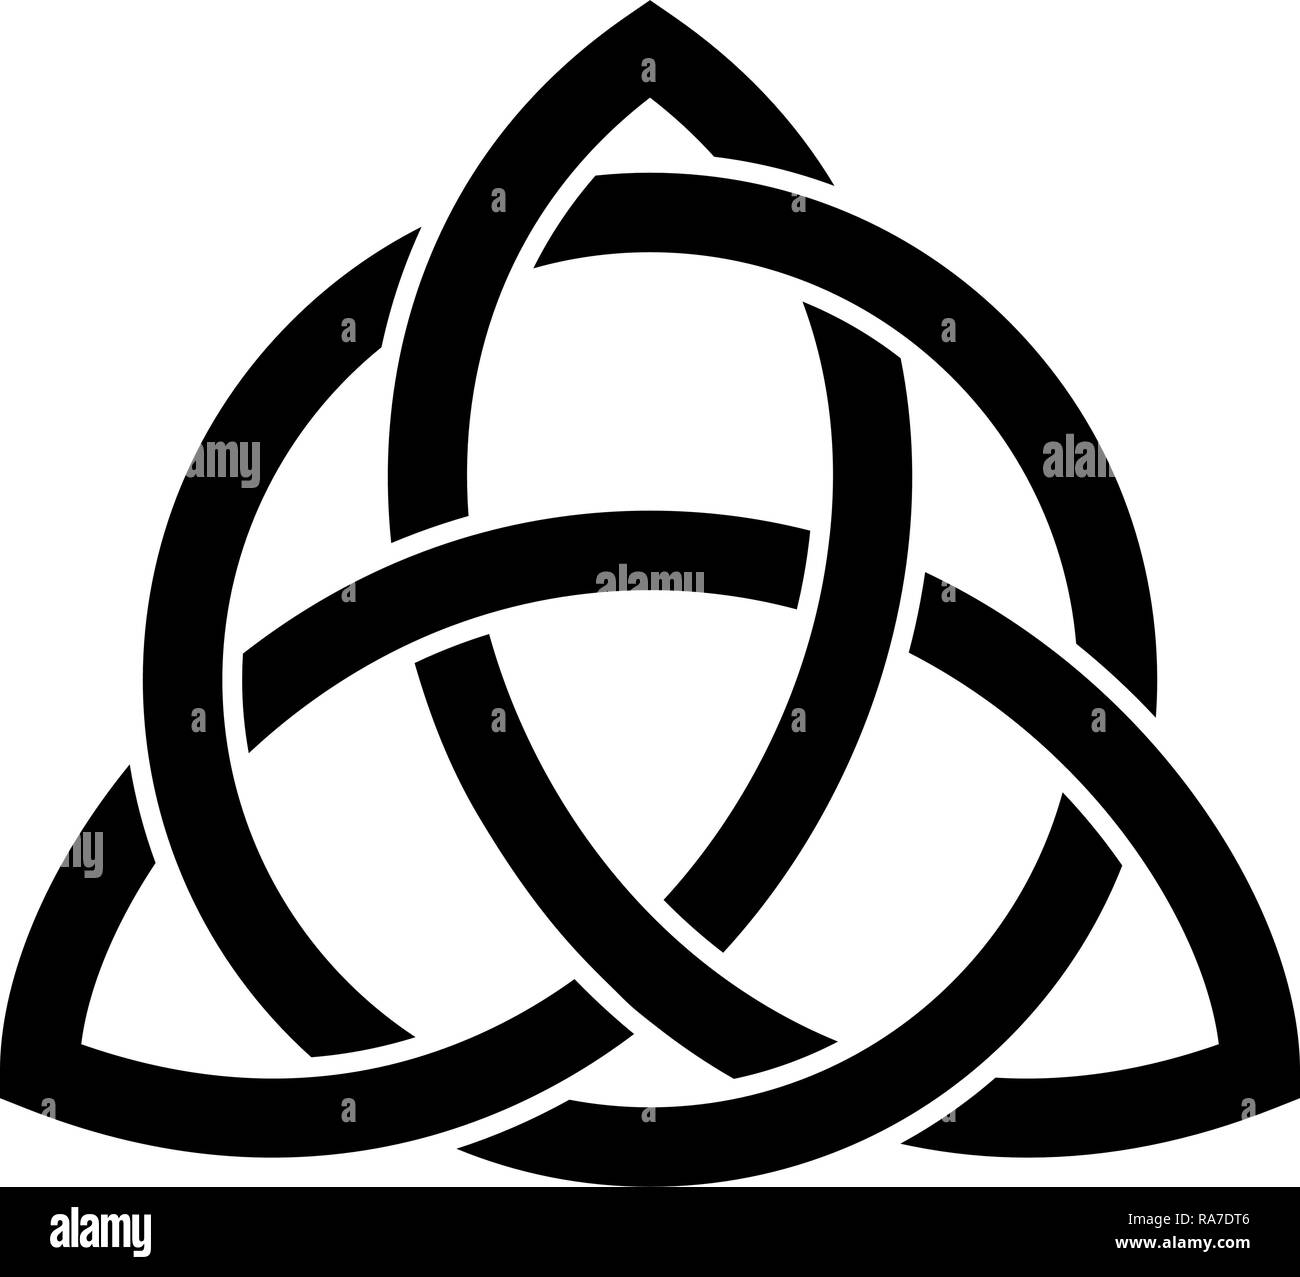 Triquetra in circle Trikvetr knot shape Trinity knot icon black color vector I flat style simple image - Stock Vector